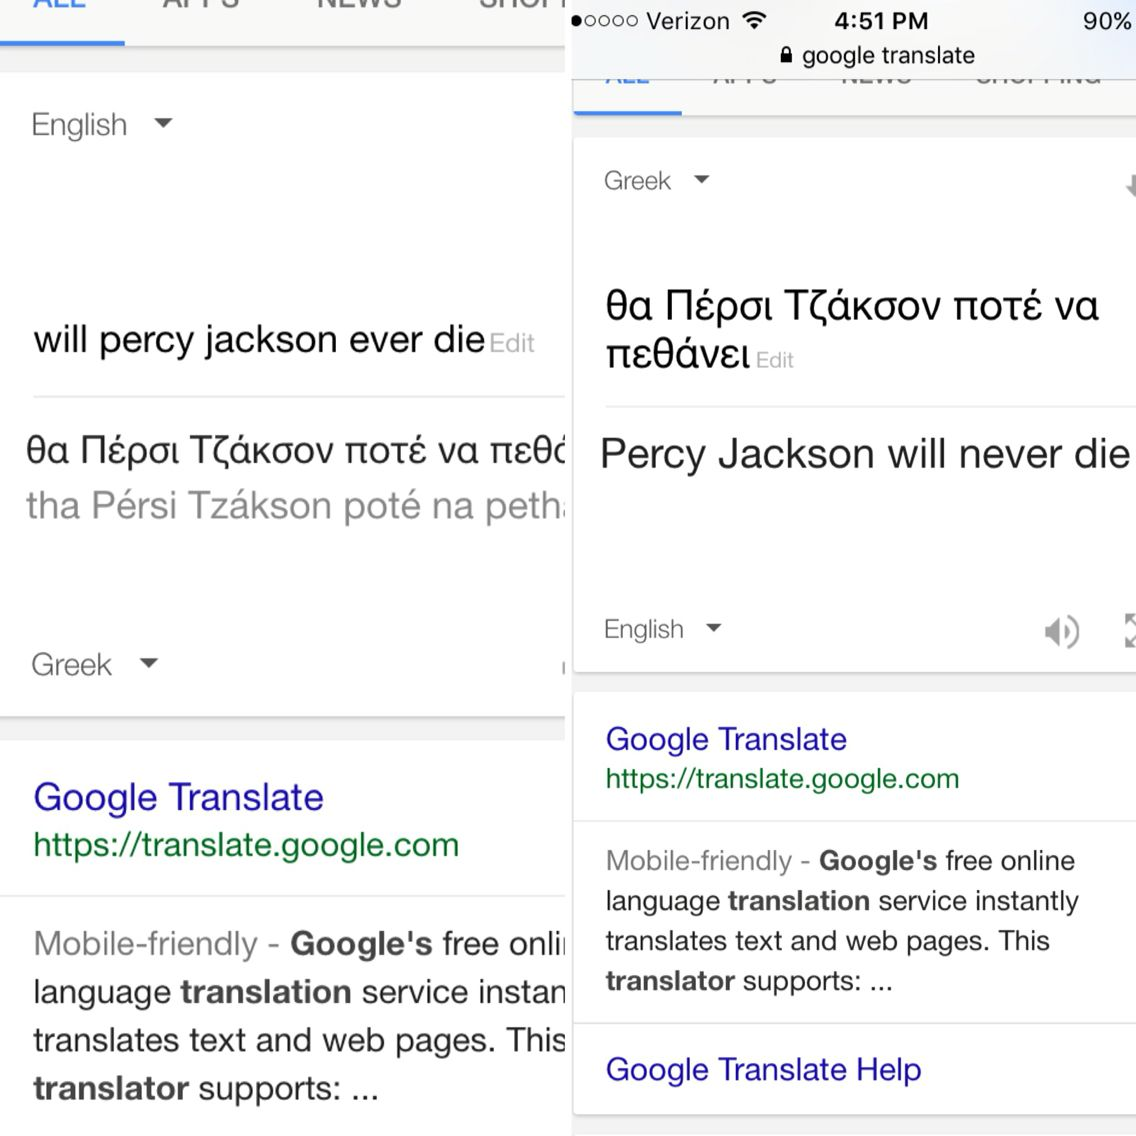 Go On Google Translate And Type Will Percy Jackson Ever Die